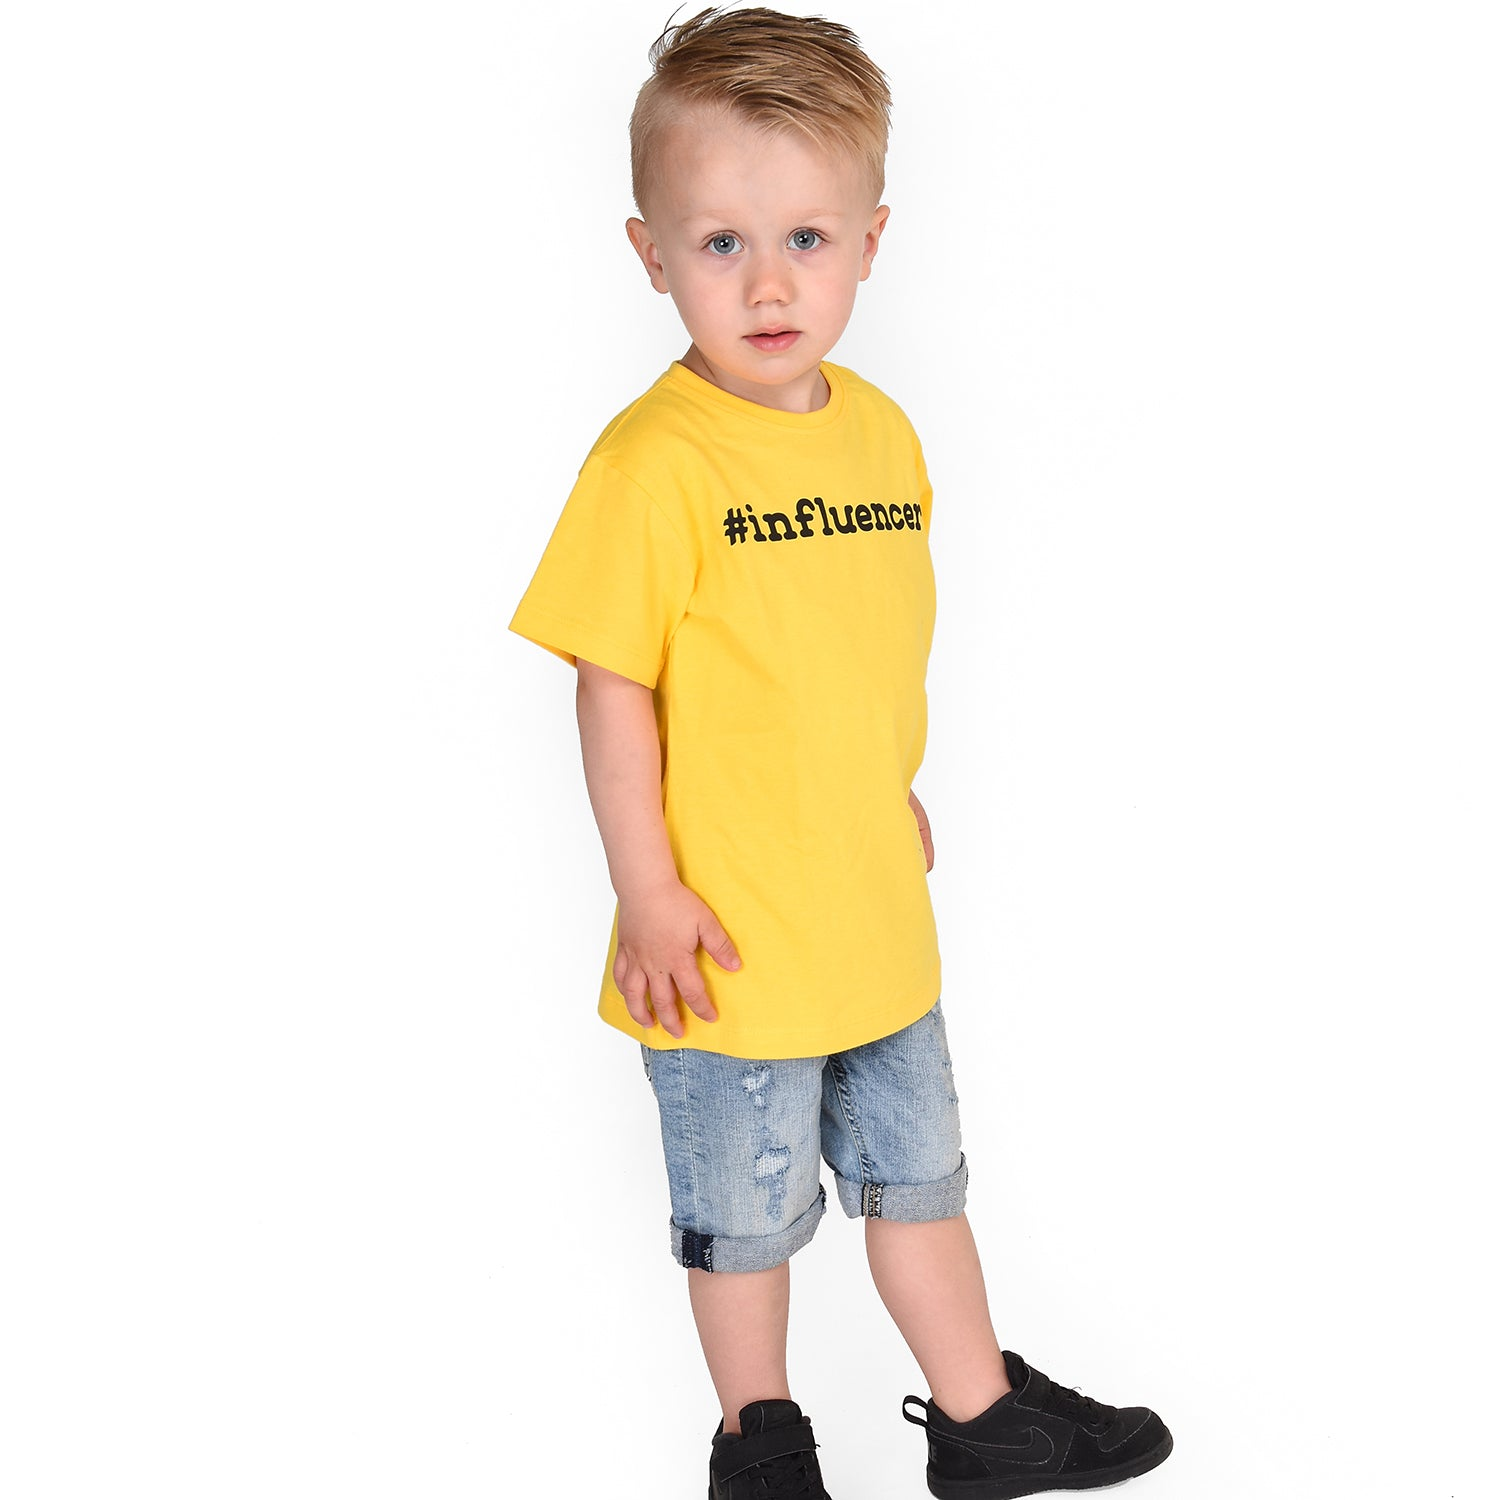 Blonde boy with yellow shirt, with '#influencer' print, by KMLeon.